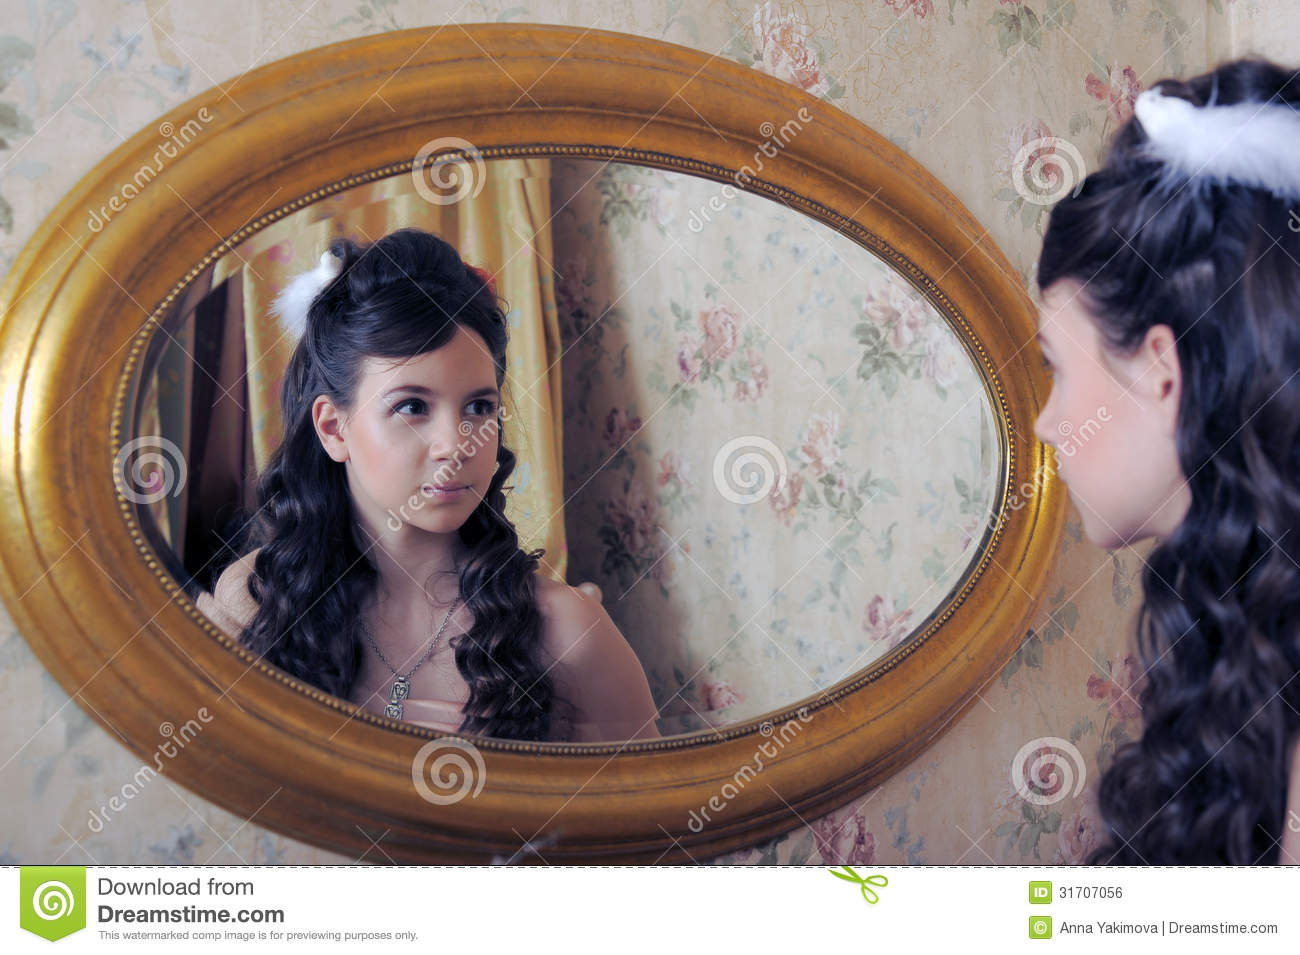 Doggystyle for young girl in front of the mirror